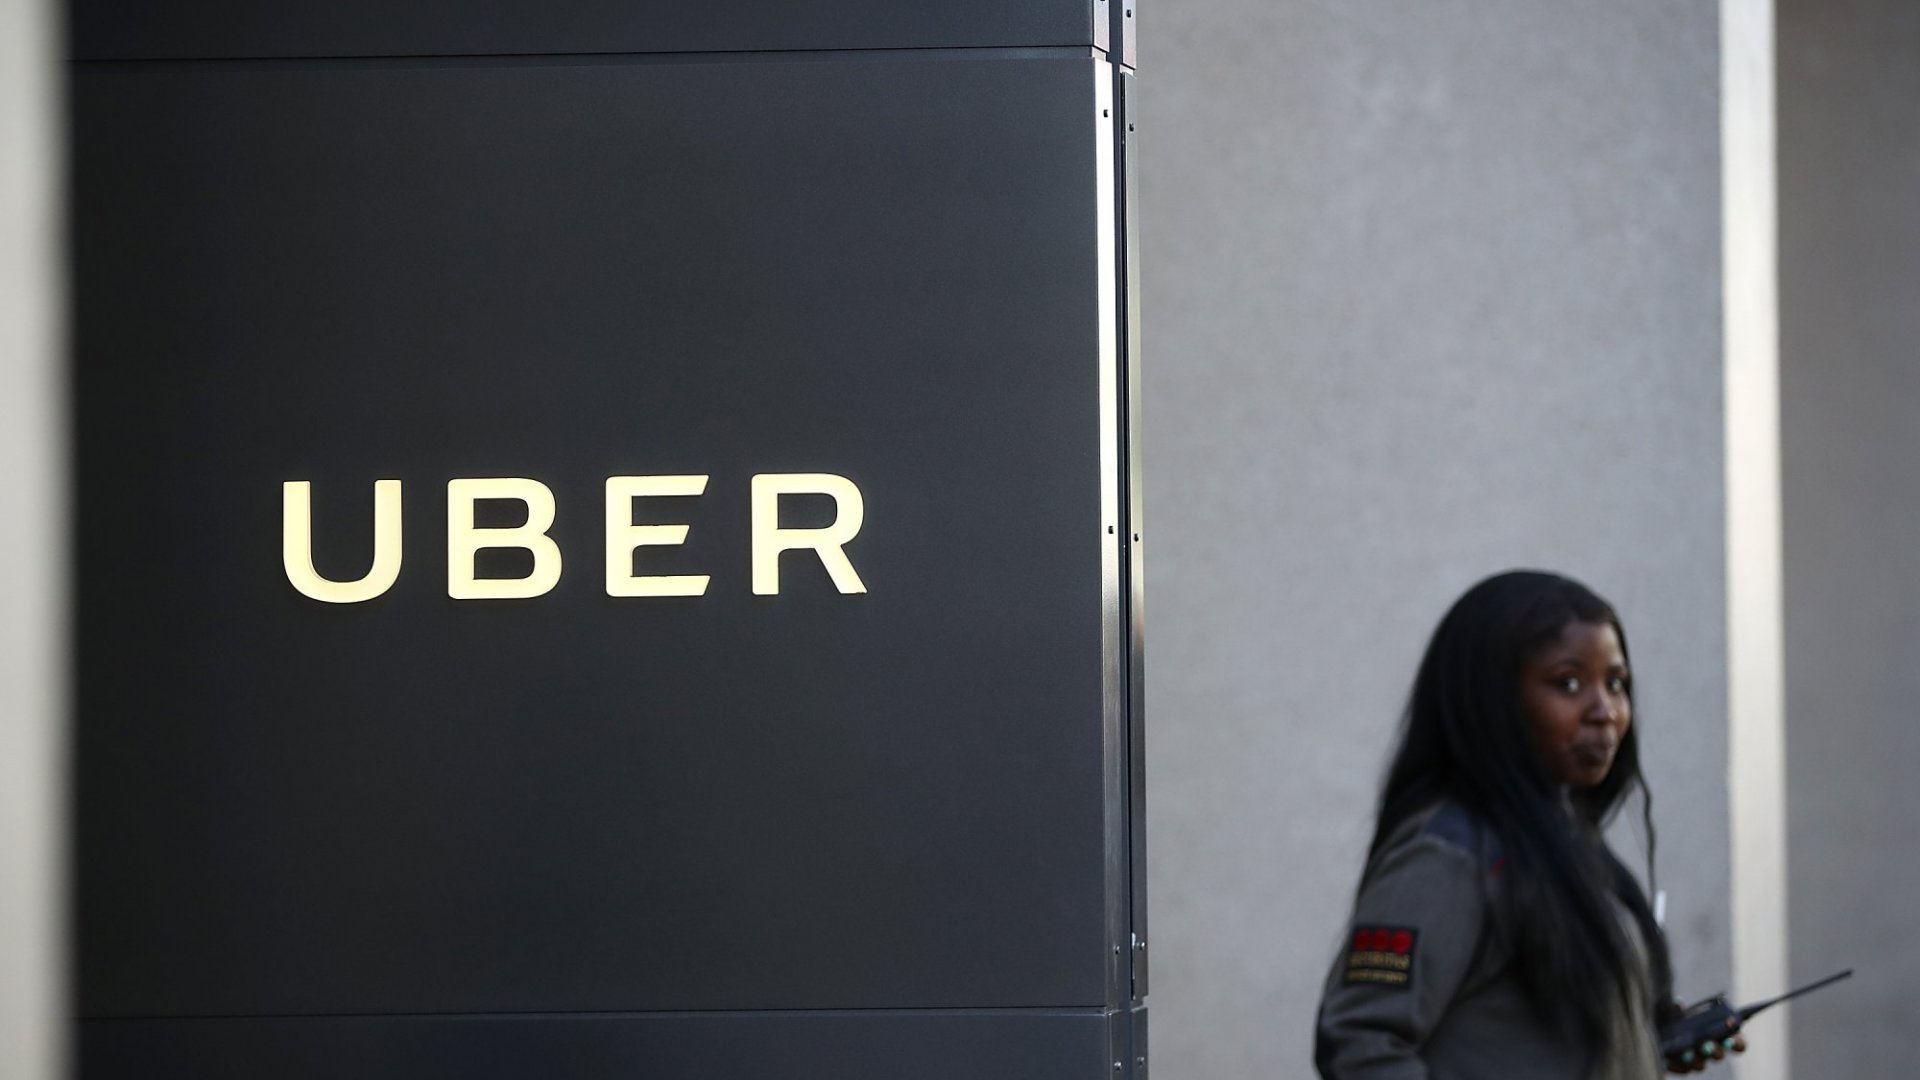 Uber's IPO Prices at $45 Per Share, the Lower End of Range